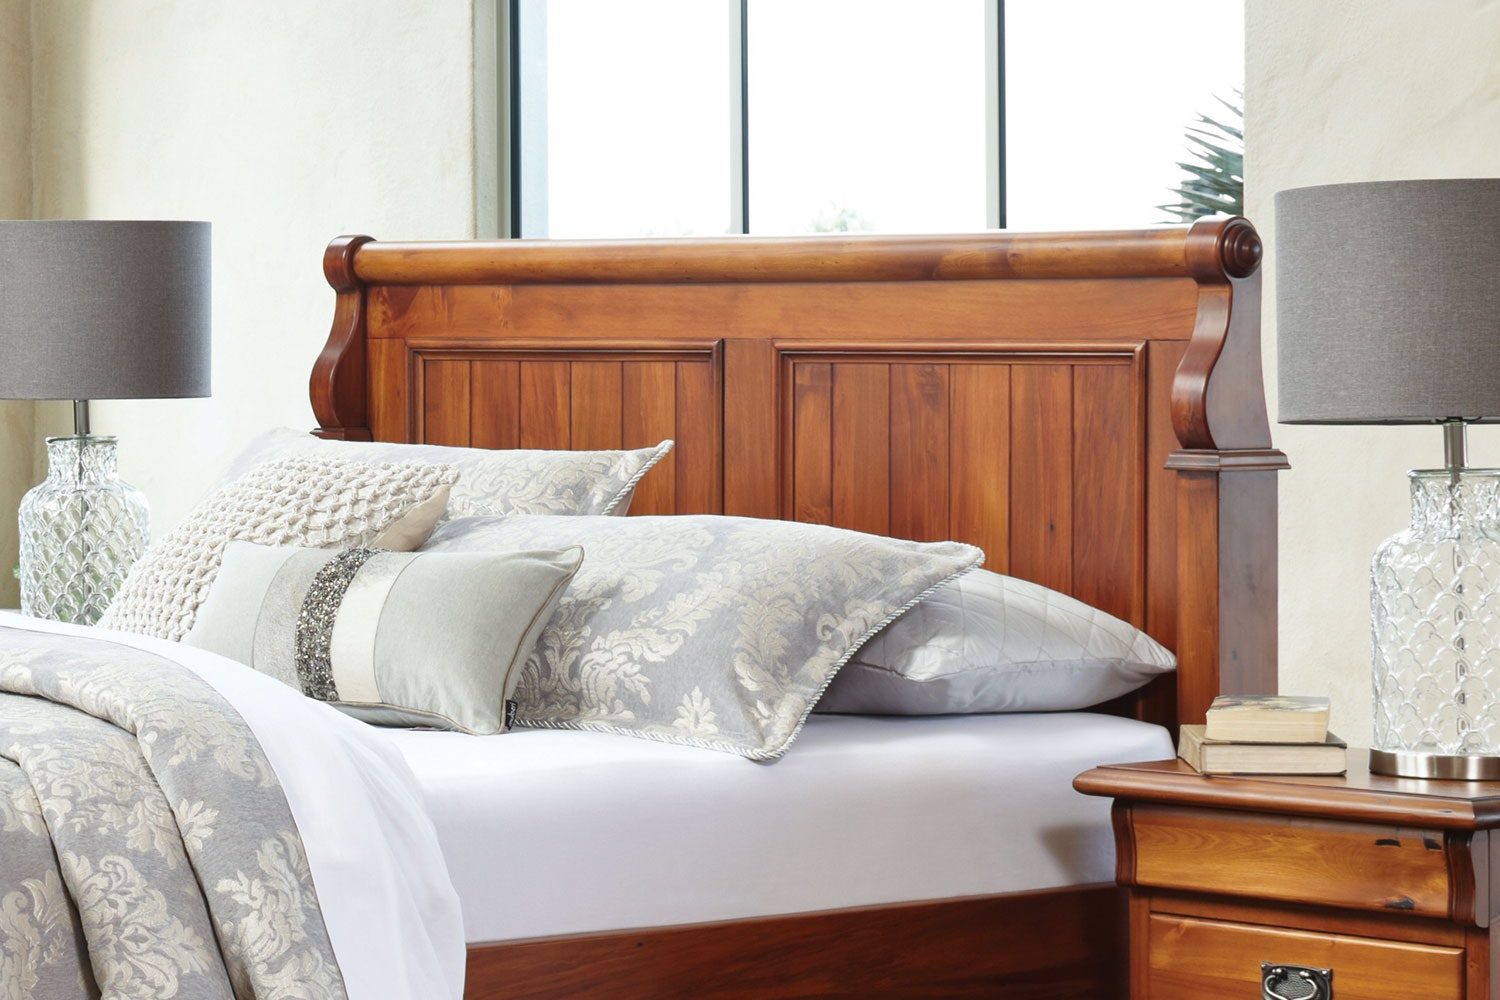 Clevedon Queen Bed Frame by Woodpecker Furniture - Headboard